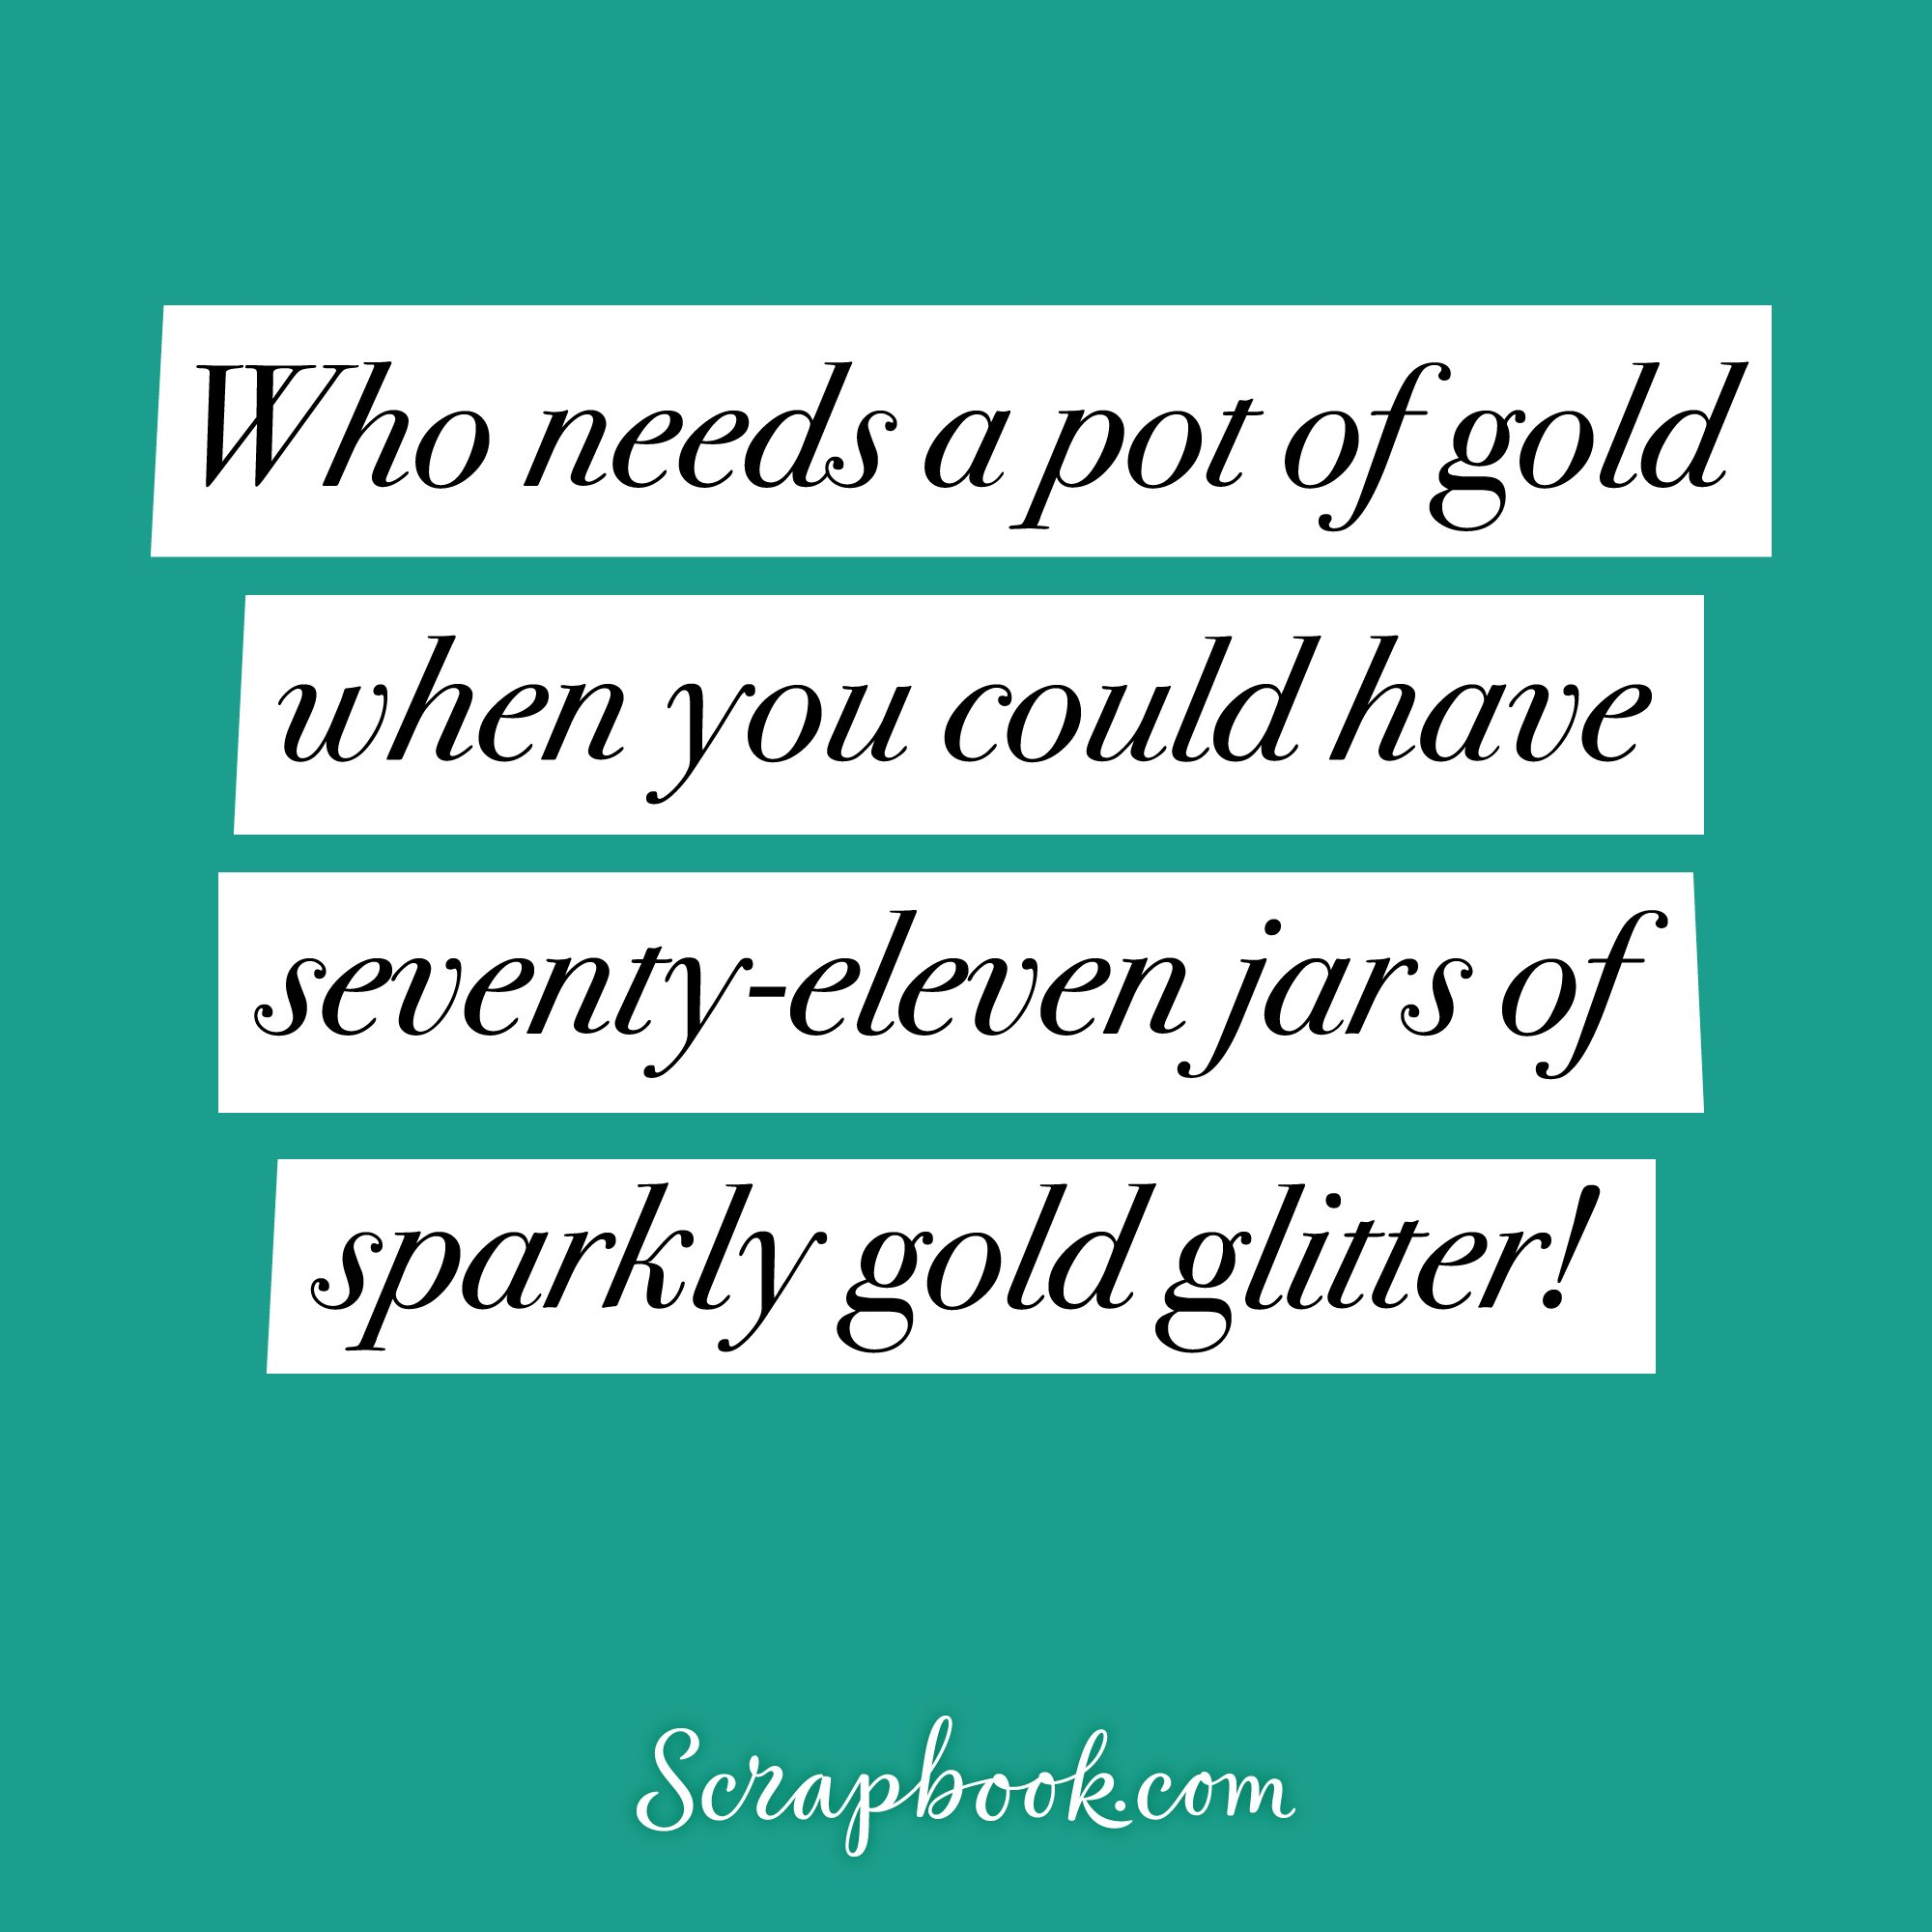 Who needs a pot of gold when you could have seventy-eleven jars of sparkly gold glitter!